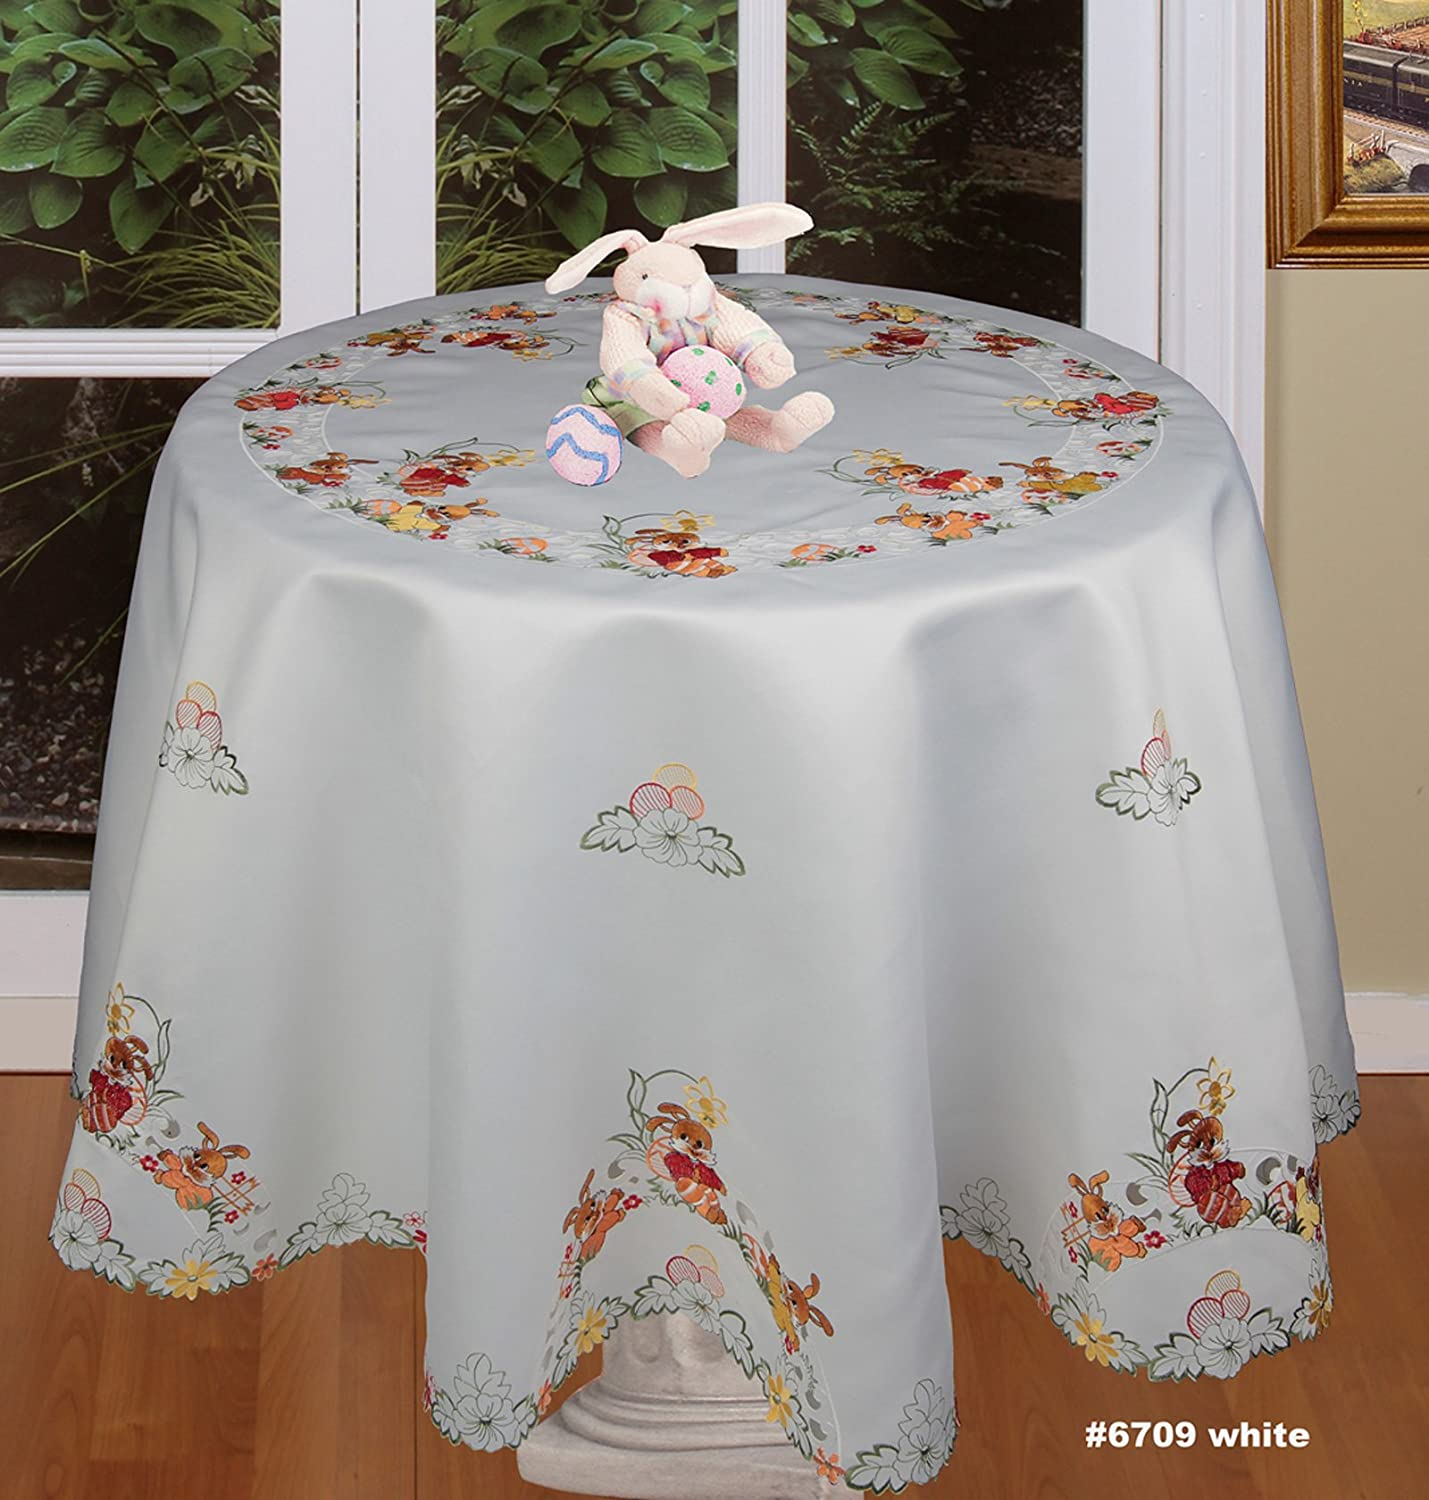 Embroidered Easter Bunny Rabbit Chicken Rooster Egg Tablecloth Placemat Runner